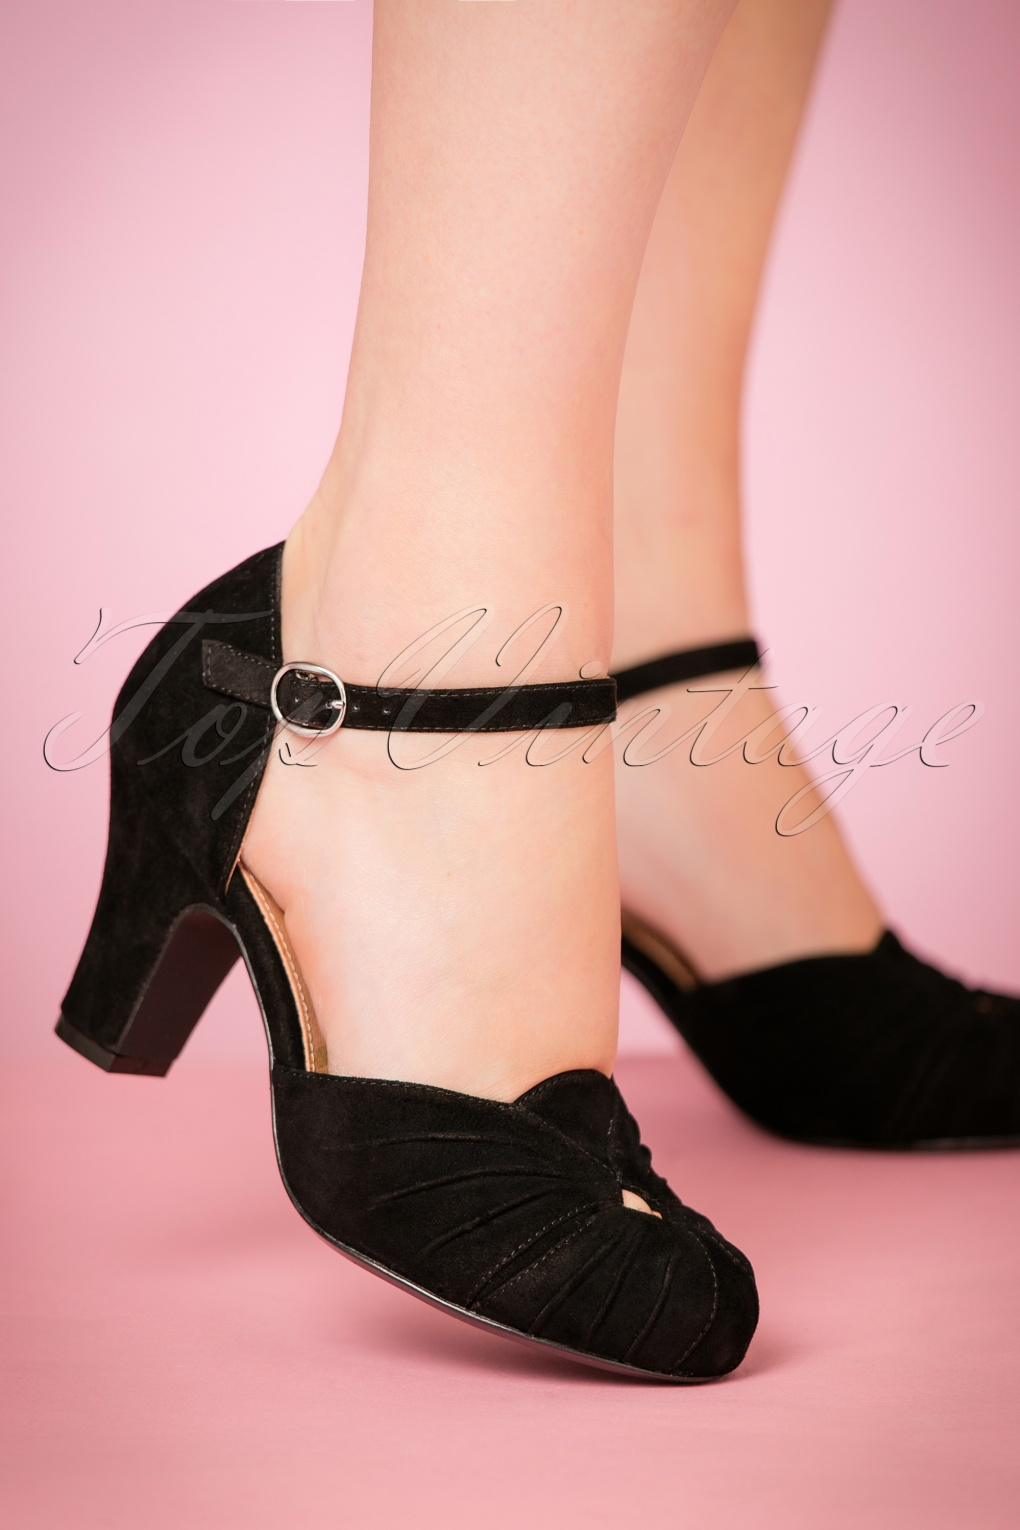 Vintage Shoes, Vintage Style Shoes 40s Amber Suede Mary Jane Pumps in Black £158.24 AT vintagedancer.com